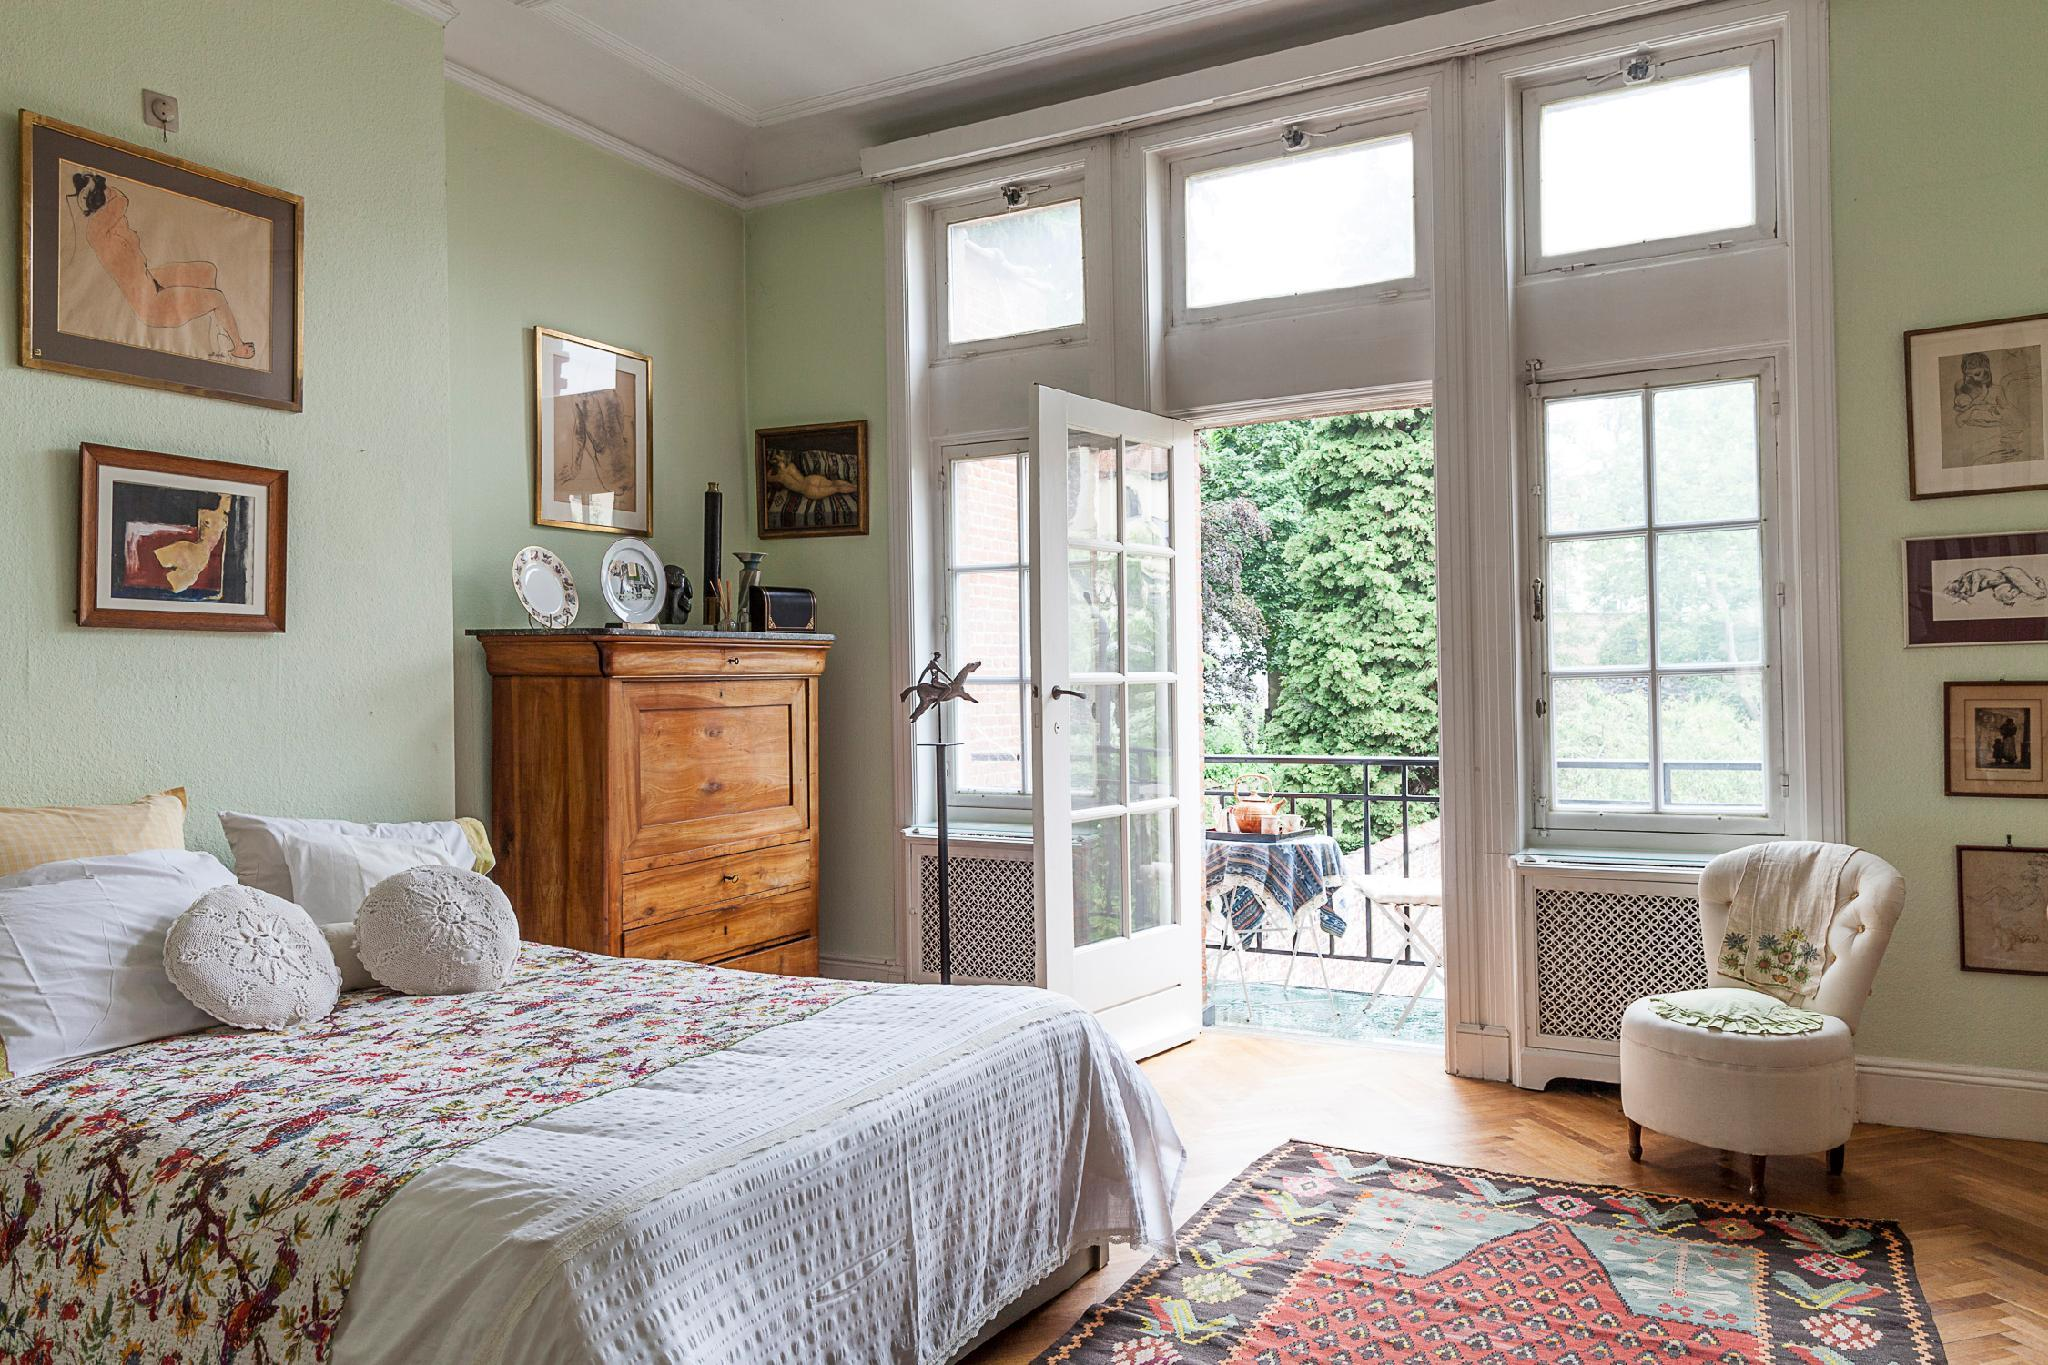 Double Room With A Balcony and Garden View